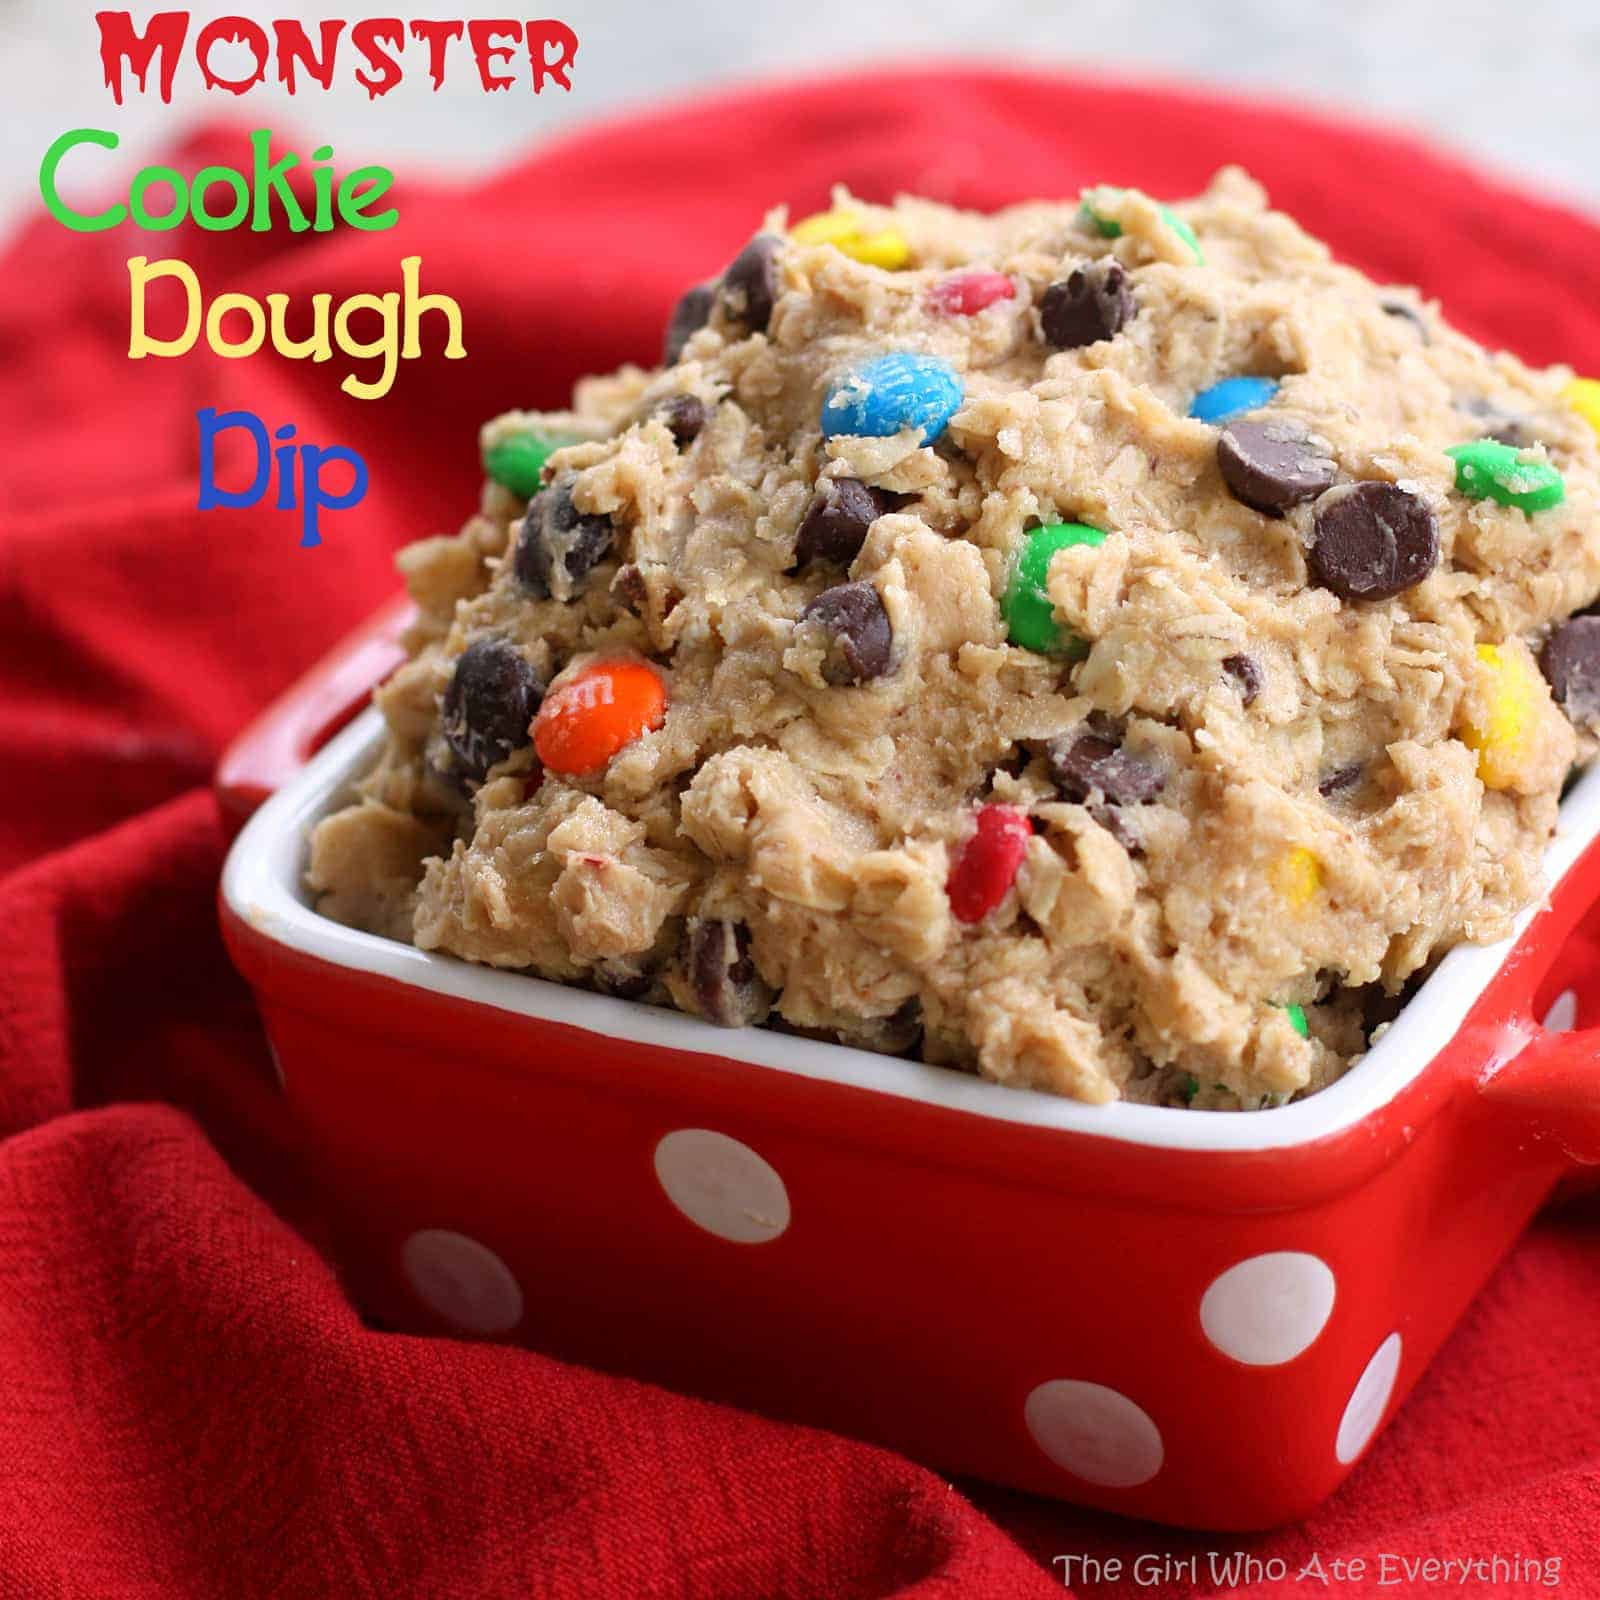 Monster Cookie Dough Dip The Girl Who Ate Everything